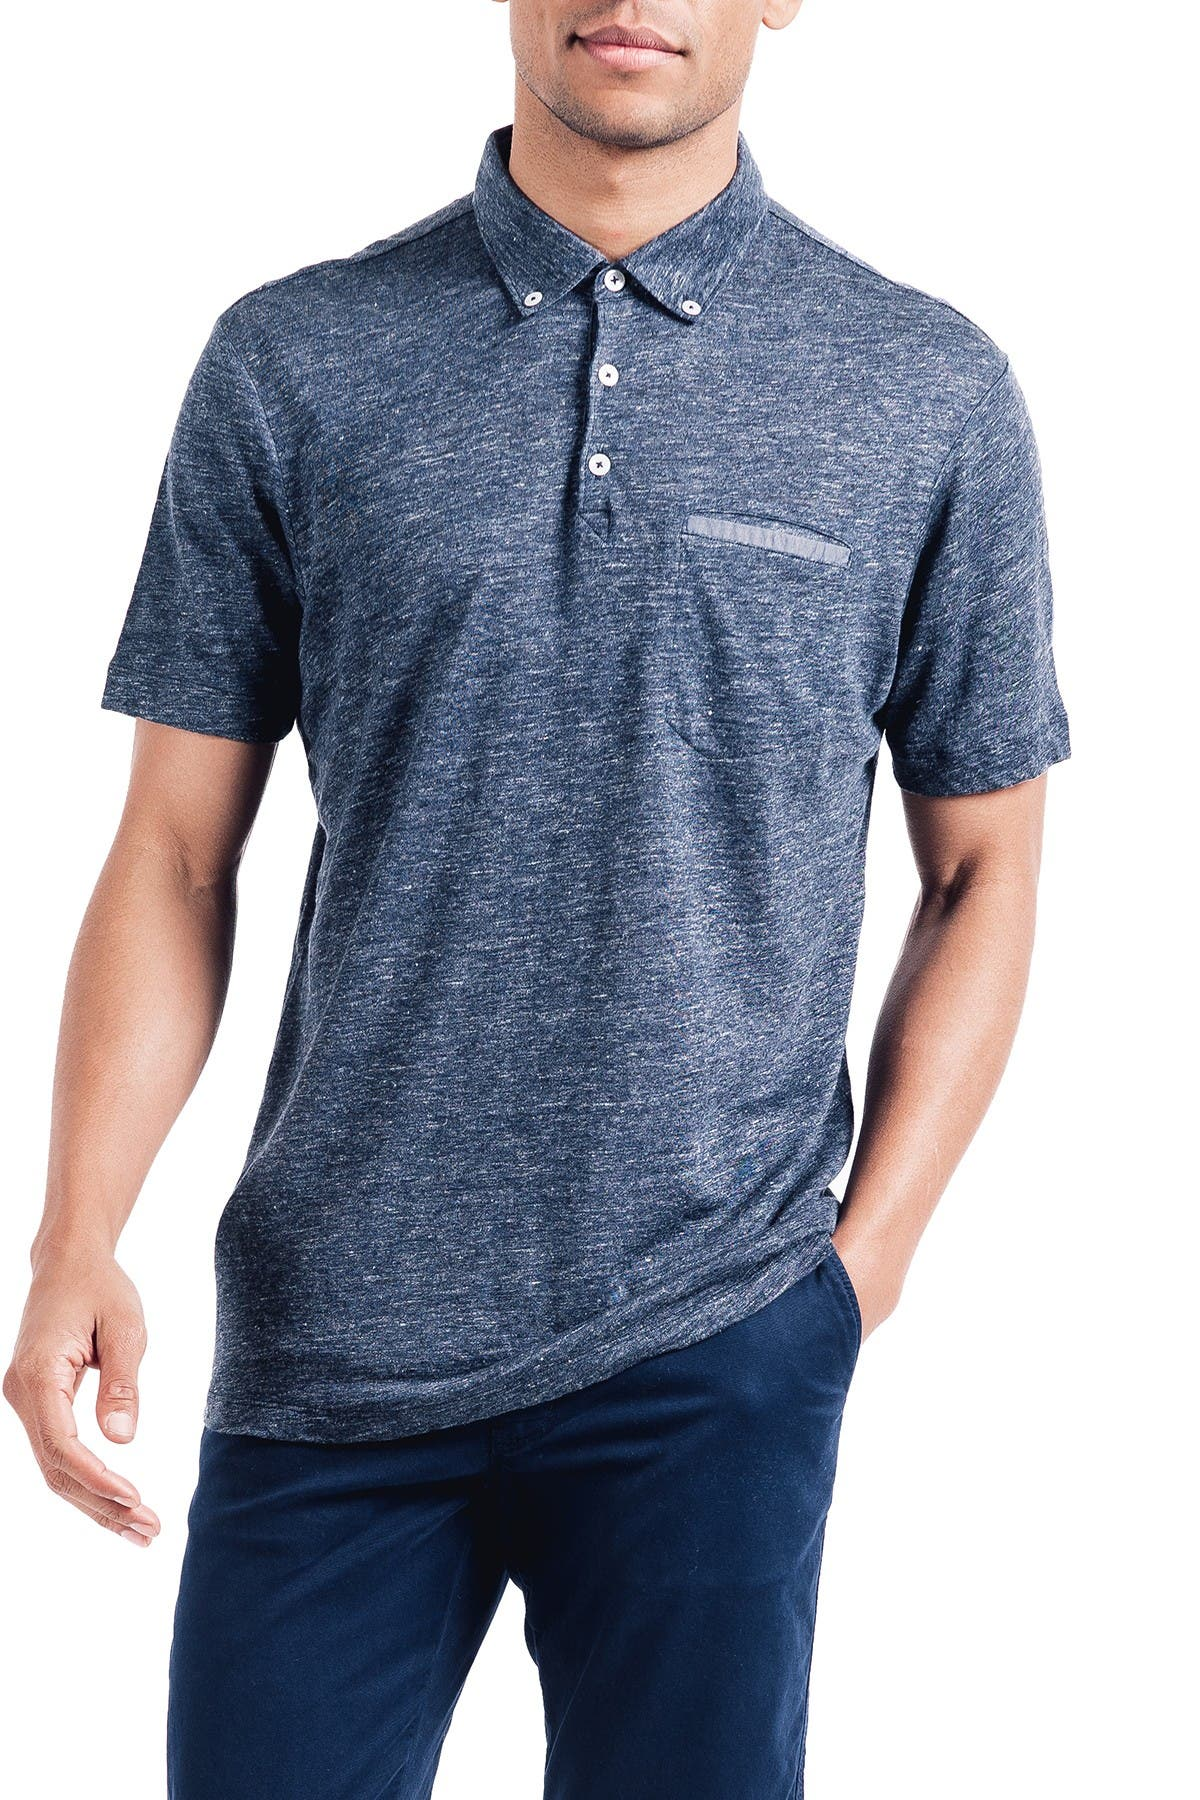 Image of Good Man Brand Heathered Linen Polo